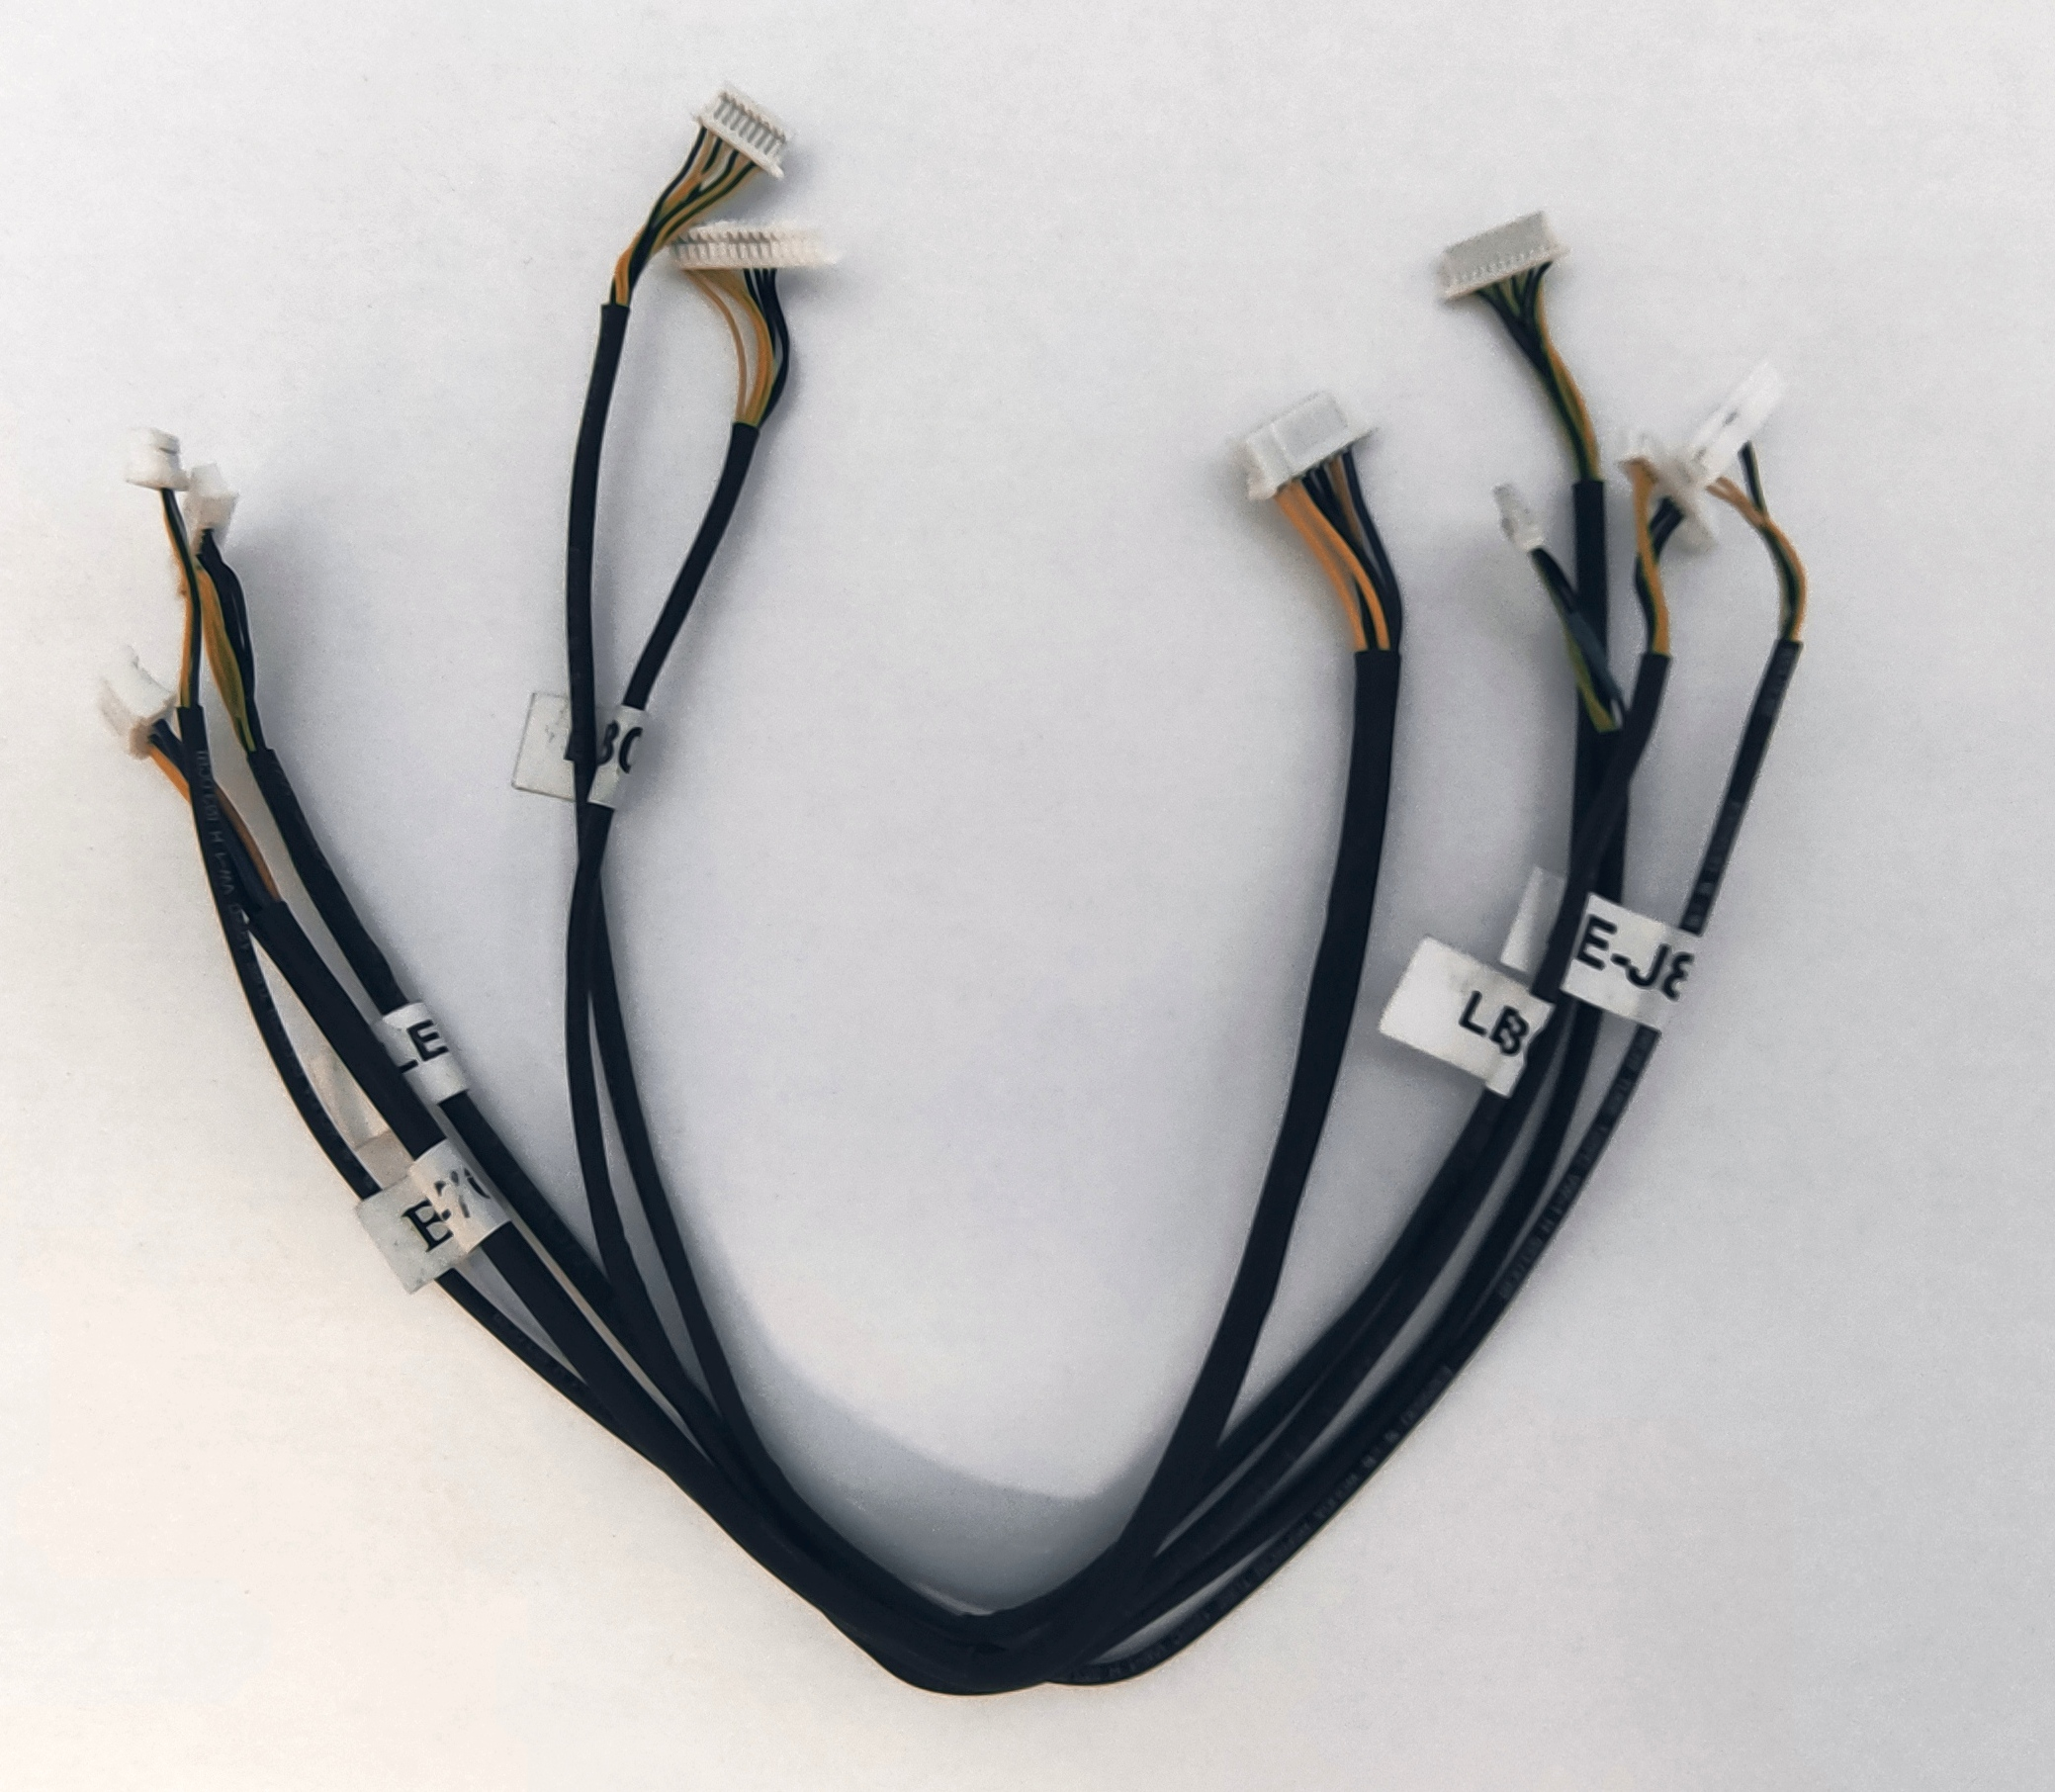 BT-cable-70720